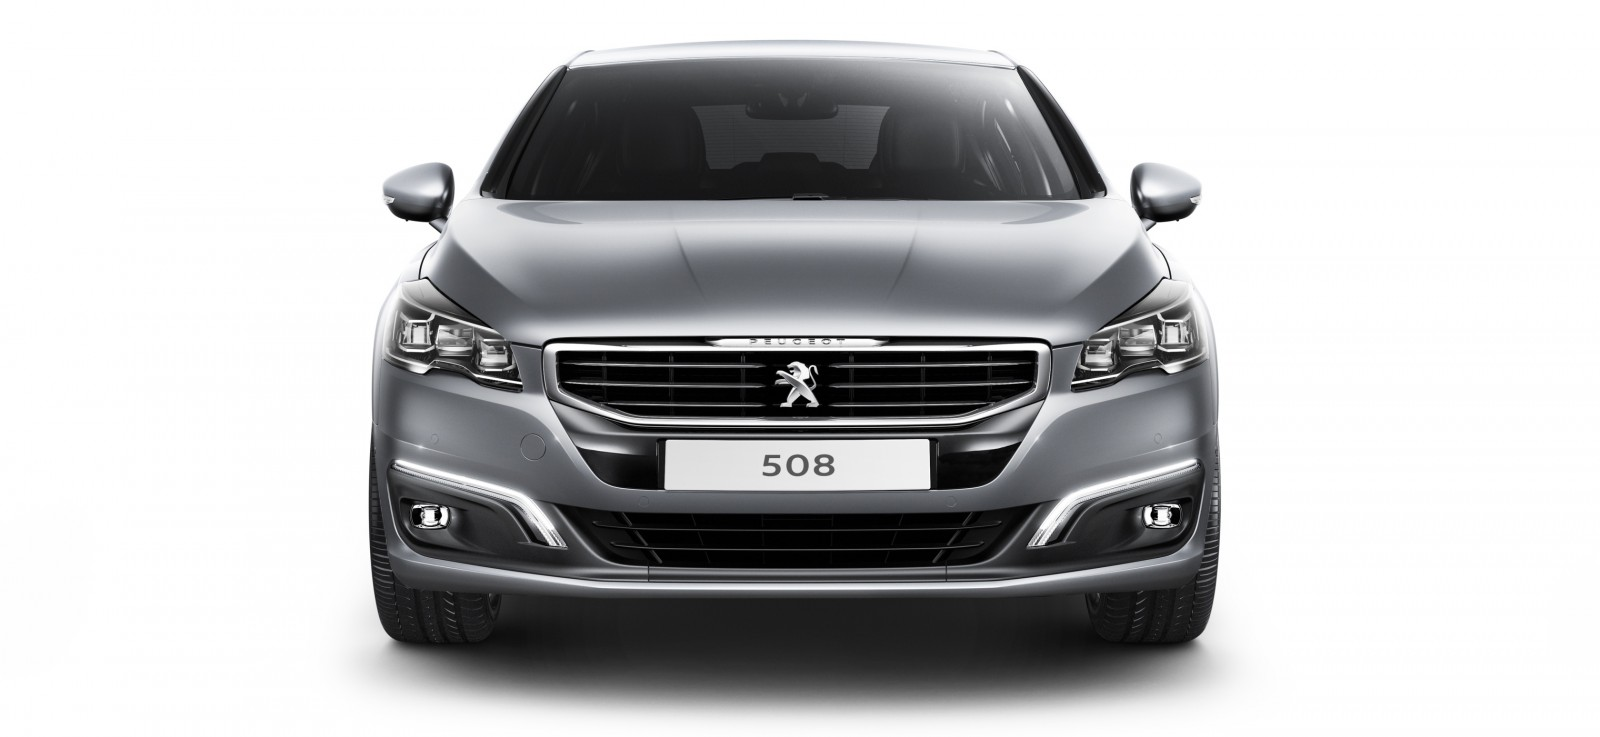 2015 Peugeot 508 Facelifted With New LED DRLs, Box-Design Beams and Tweaked Cabin Tech 5